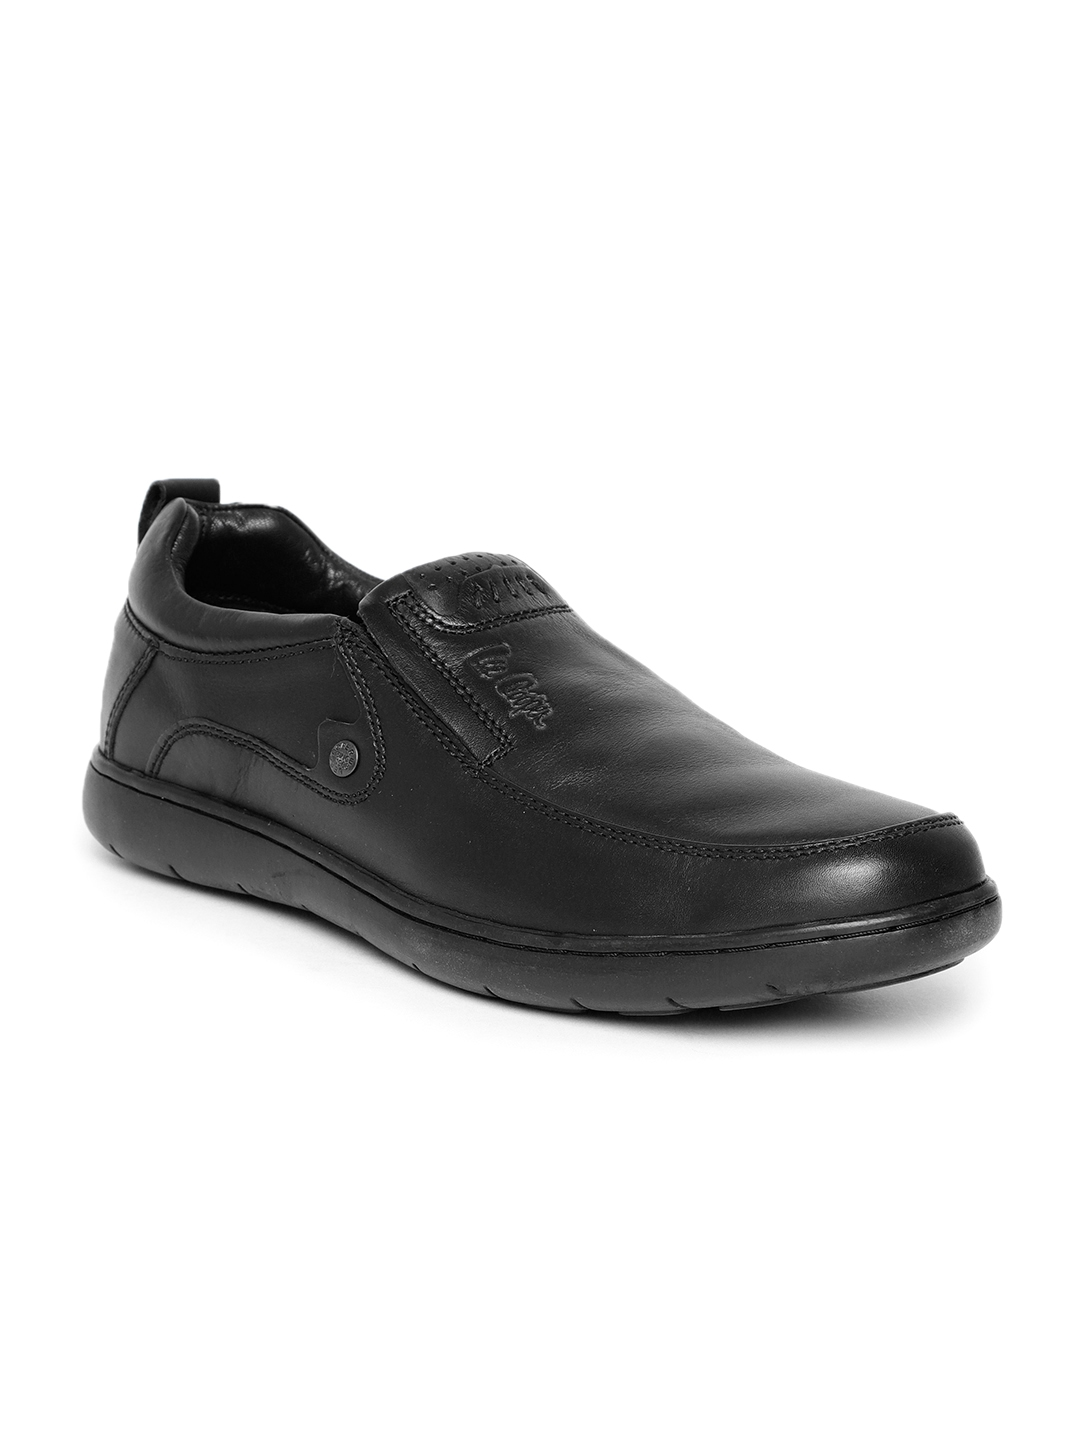 daca1c8b2ce Buy Lee Cooper Men Black Leather Slip On Sneakers - Casual Shoes for ...